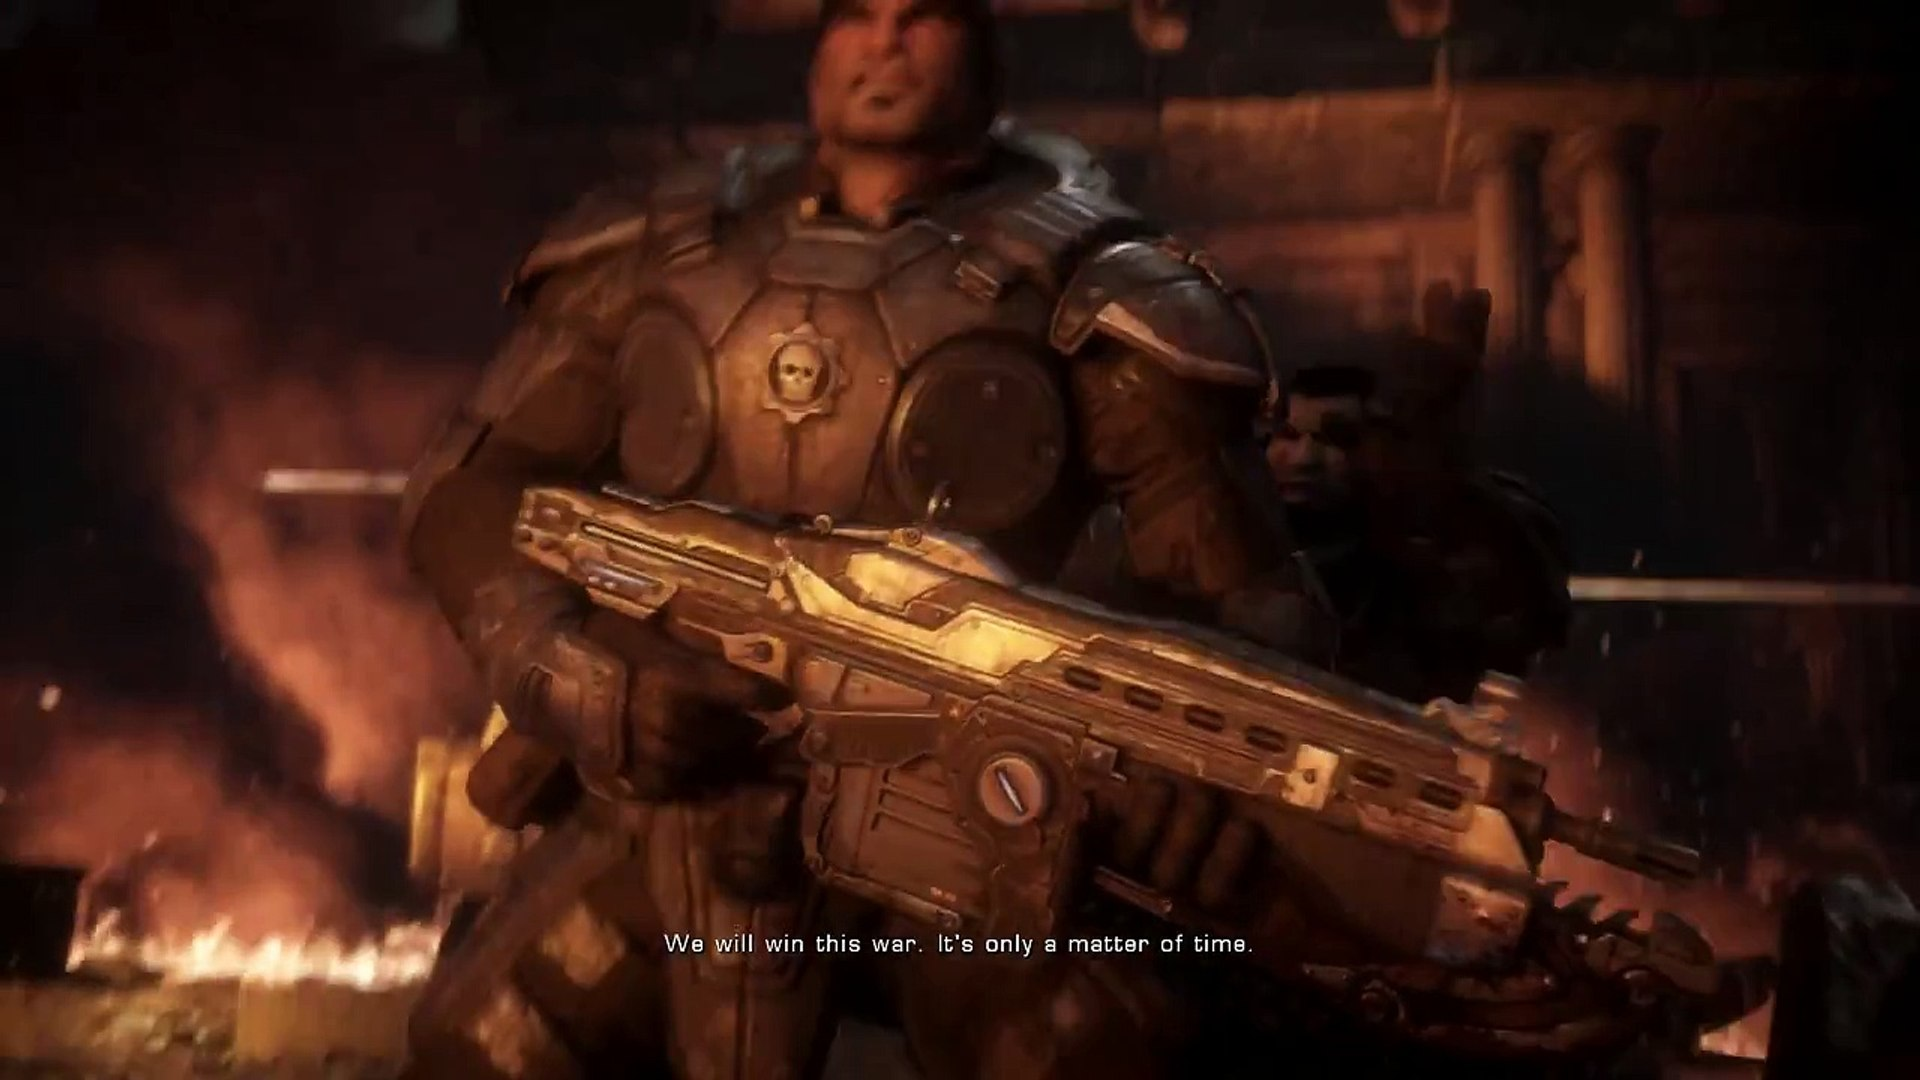 Ultimate RAGE!!! Good job I love this game. Gears of War ultimate edition PC episode 3